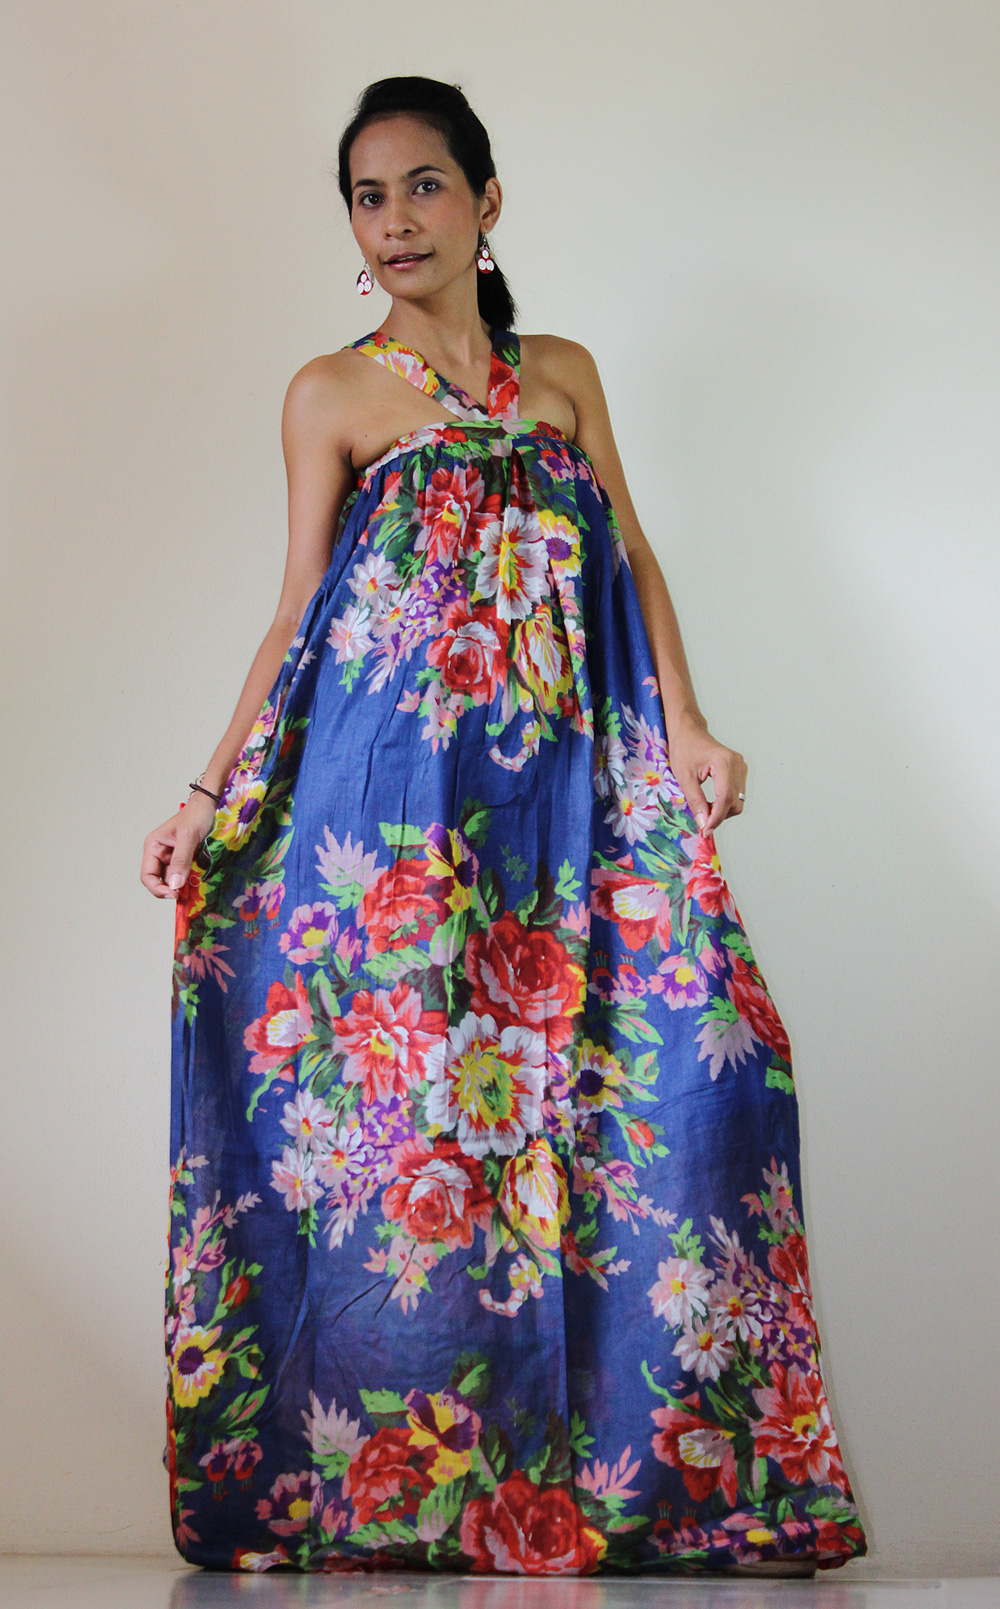 Floral Maxi Dress Party Bridesmaid Stylish Blue Tube Halter Spring Summer Gown : Flower Blossom Collection